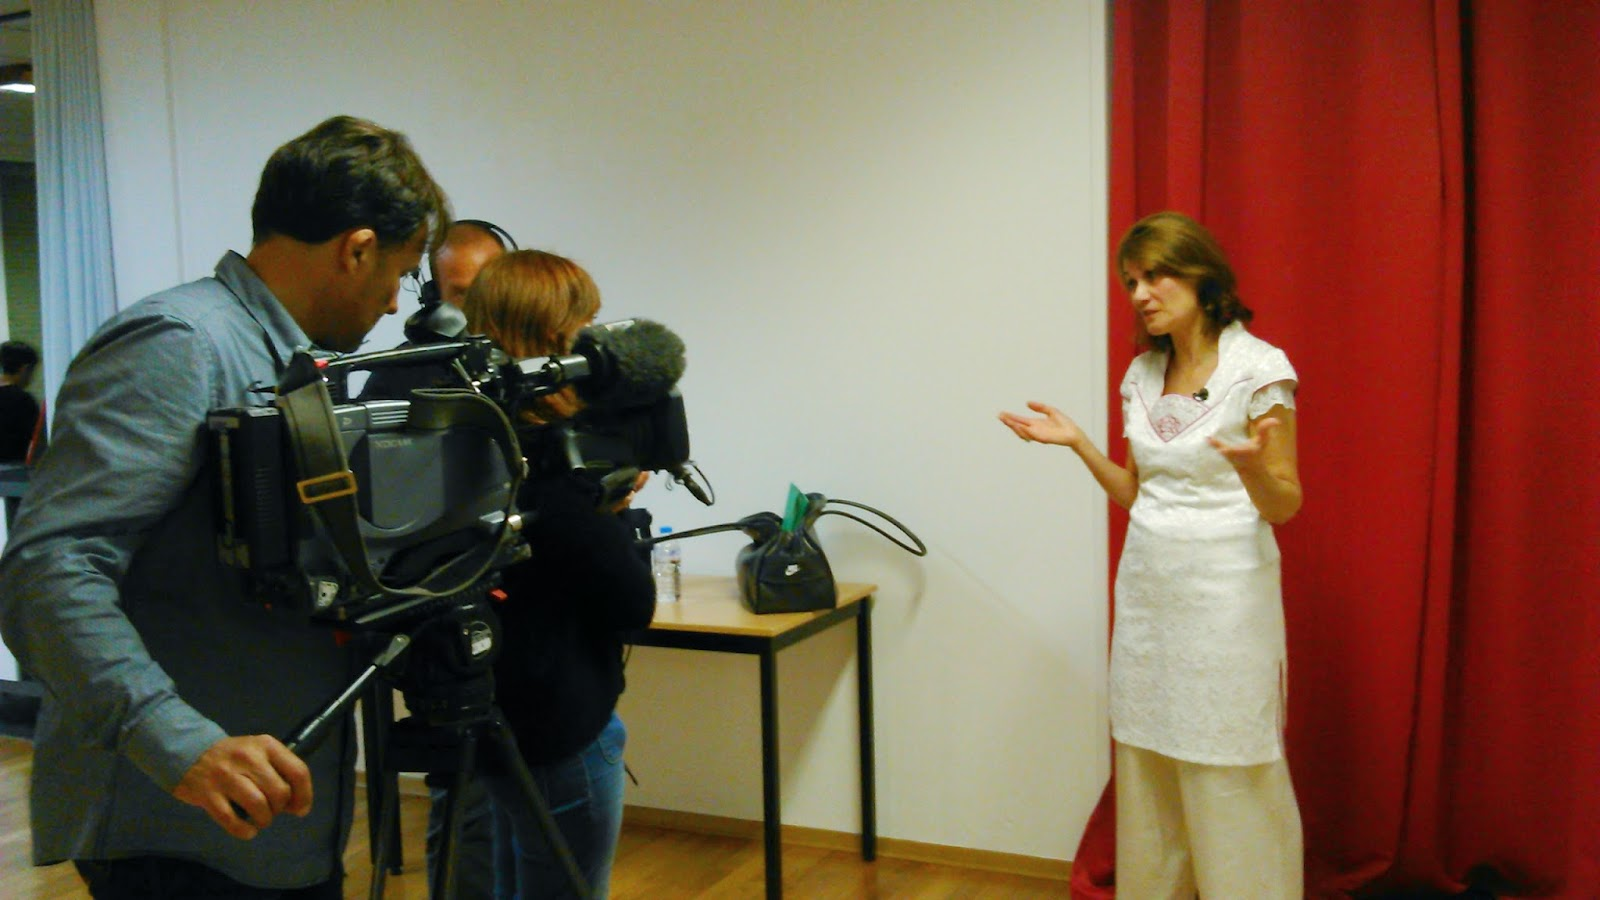 Marie-Gabrielle interview France 3 Normandie